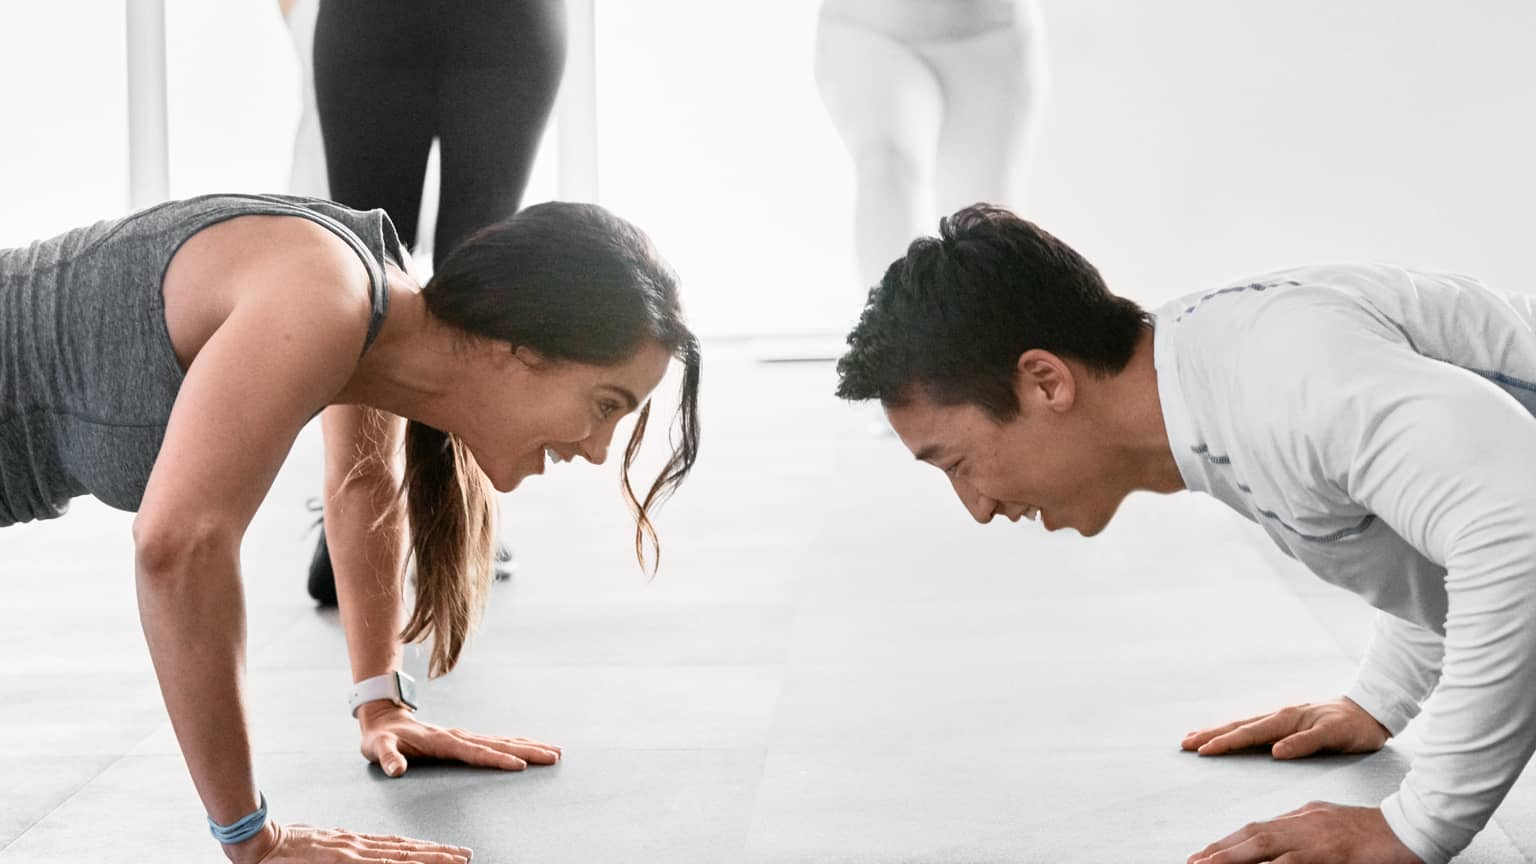 Two people in a group fitness class face each other while doing pushups